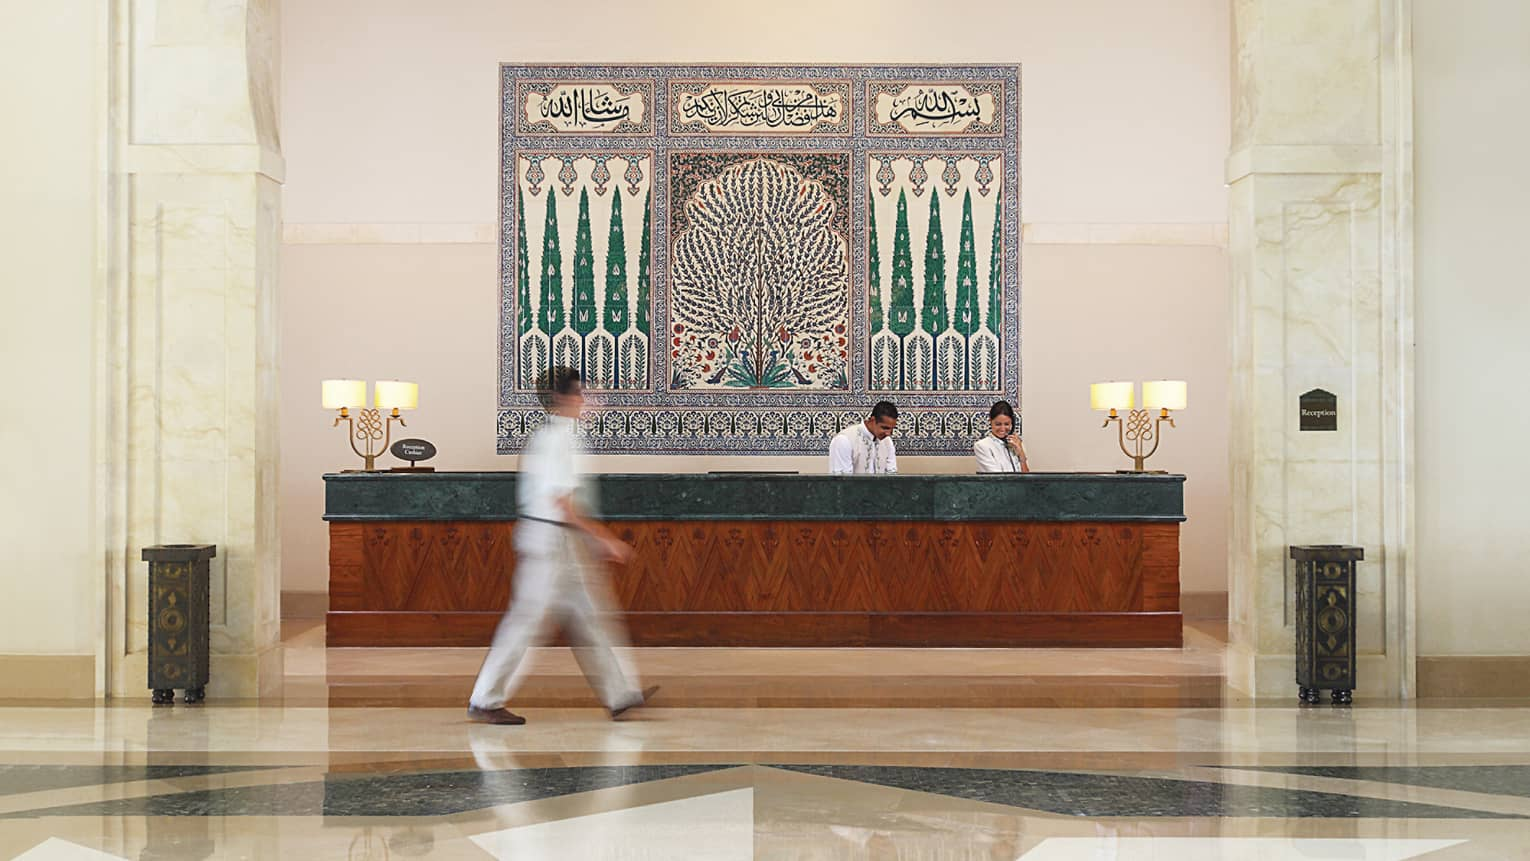 Man walks through hotel lobby, past staff at reception desk under large tile mosaic